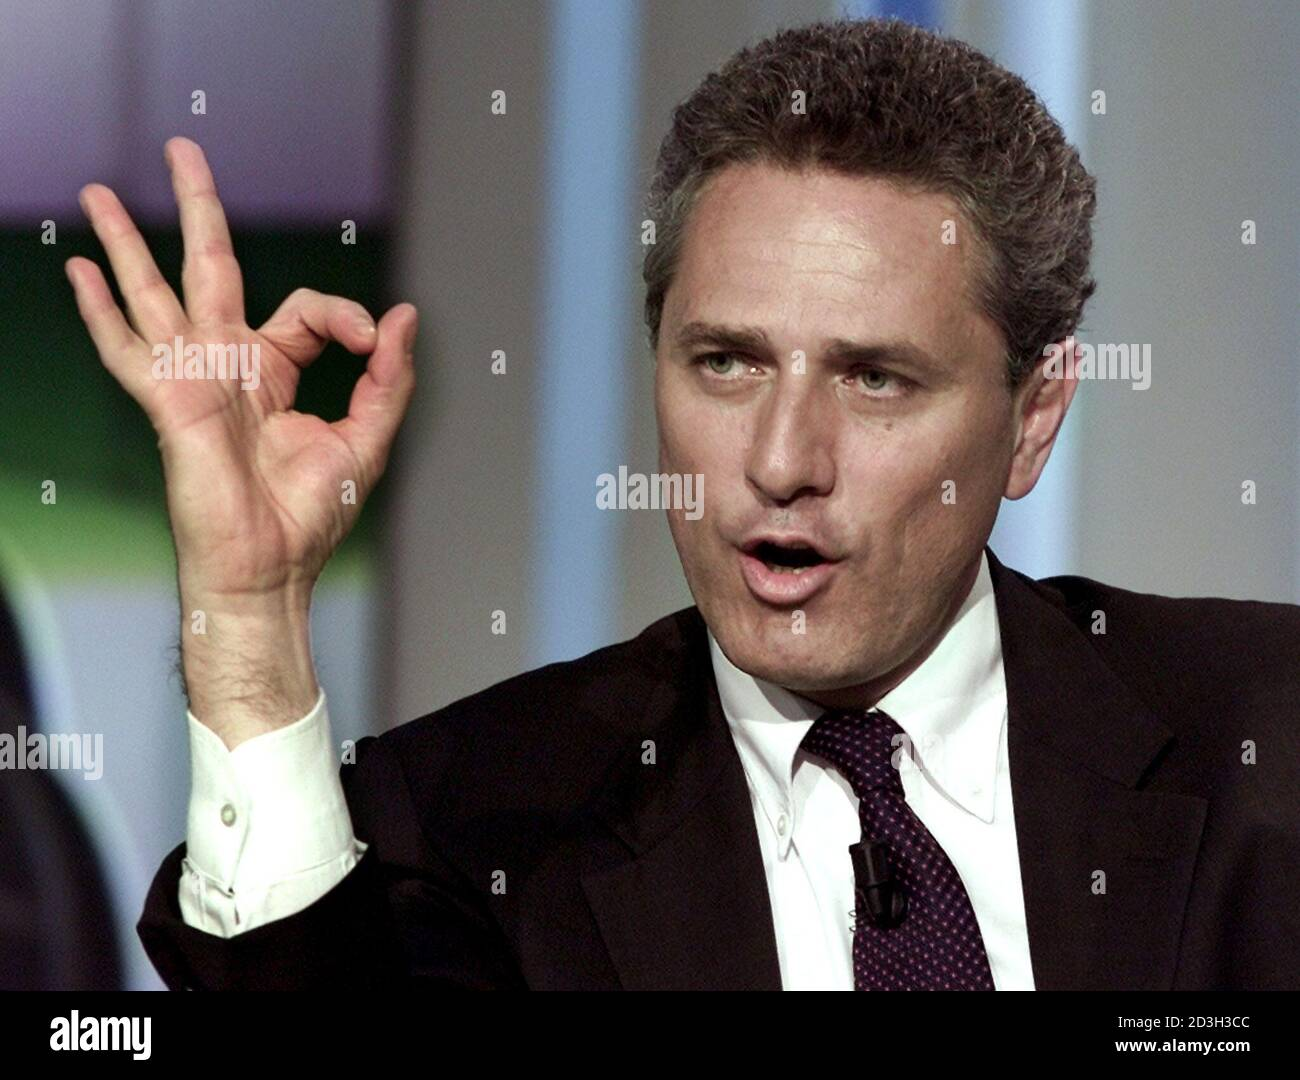 Centre Left Prime Ministerial Candidate Francesco Rutelli Gestures During The Recording Of The Television Talk Show Porta A Porta Door To Door At The Italian State Television Company Rai S Headquarters May 7 2001